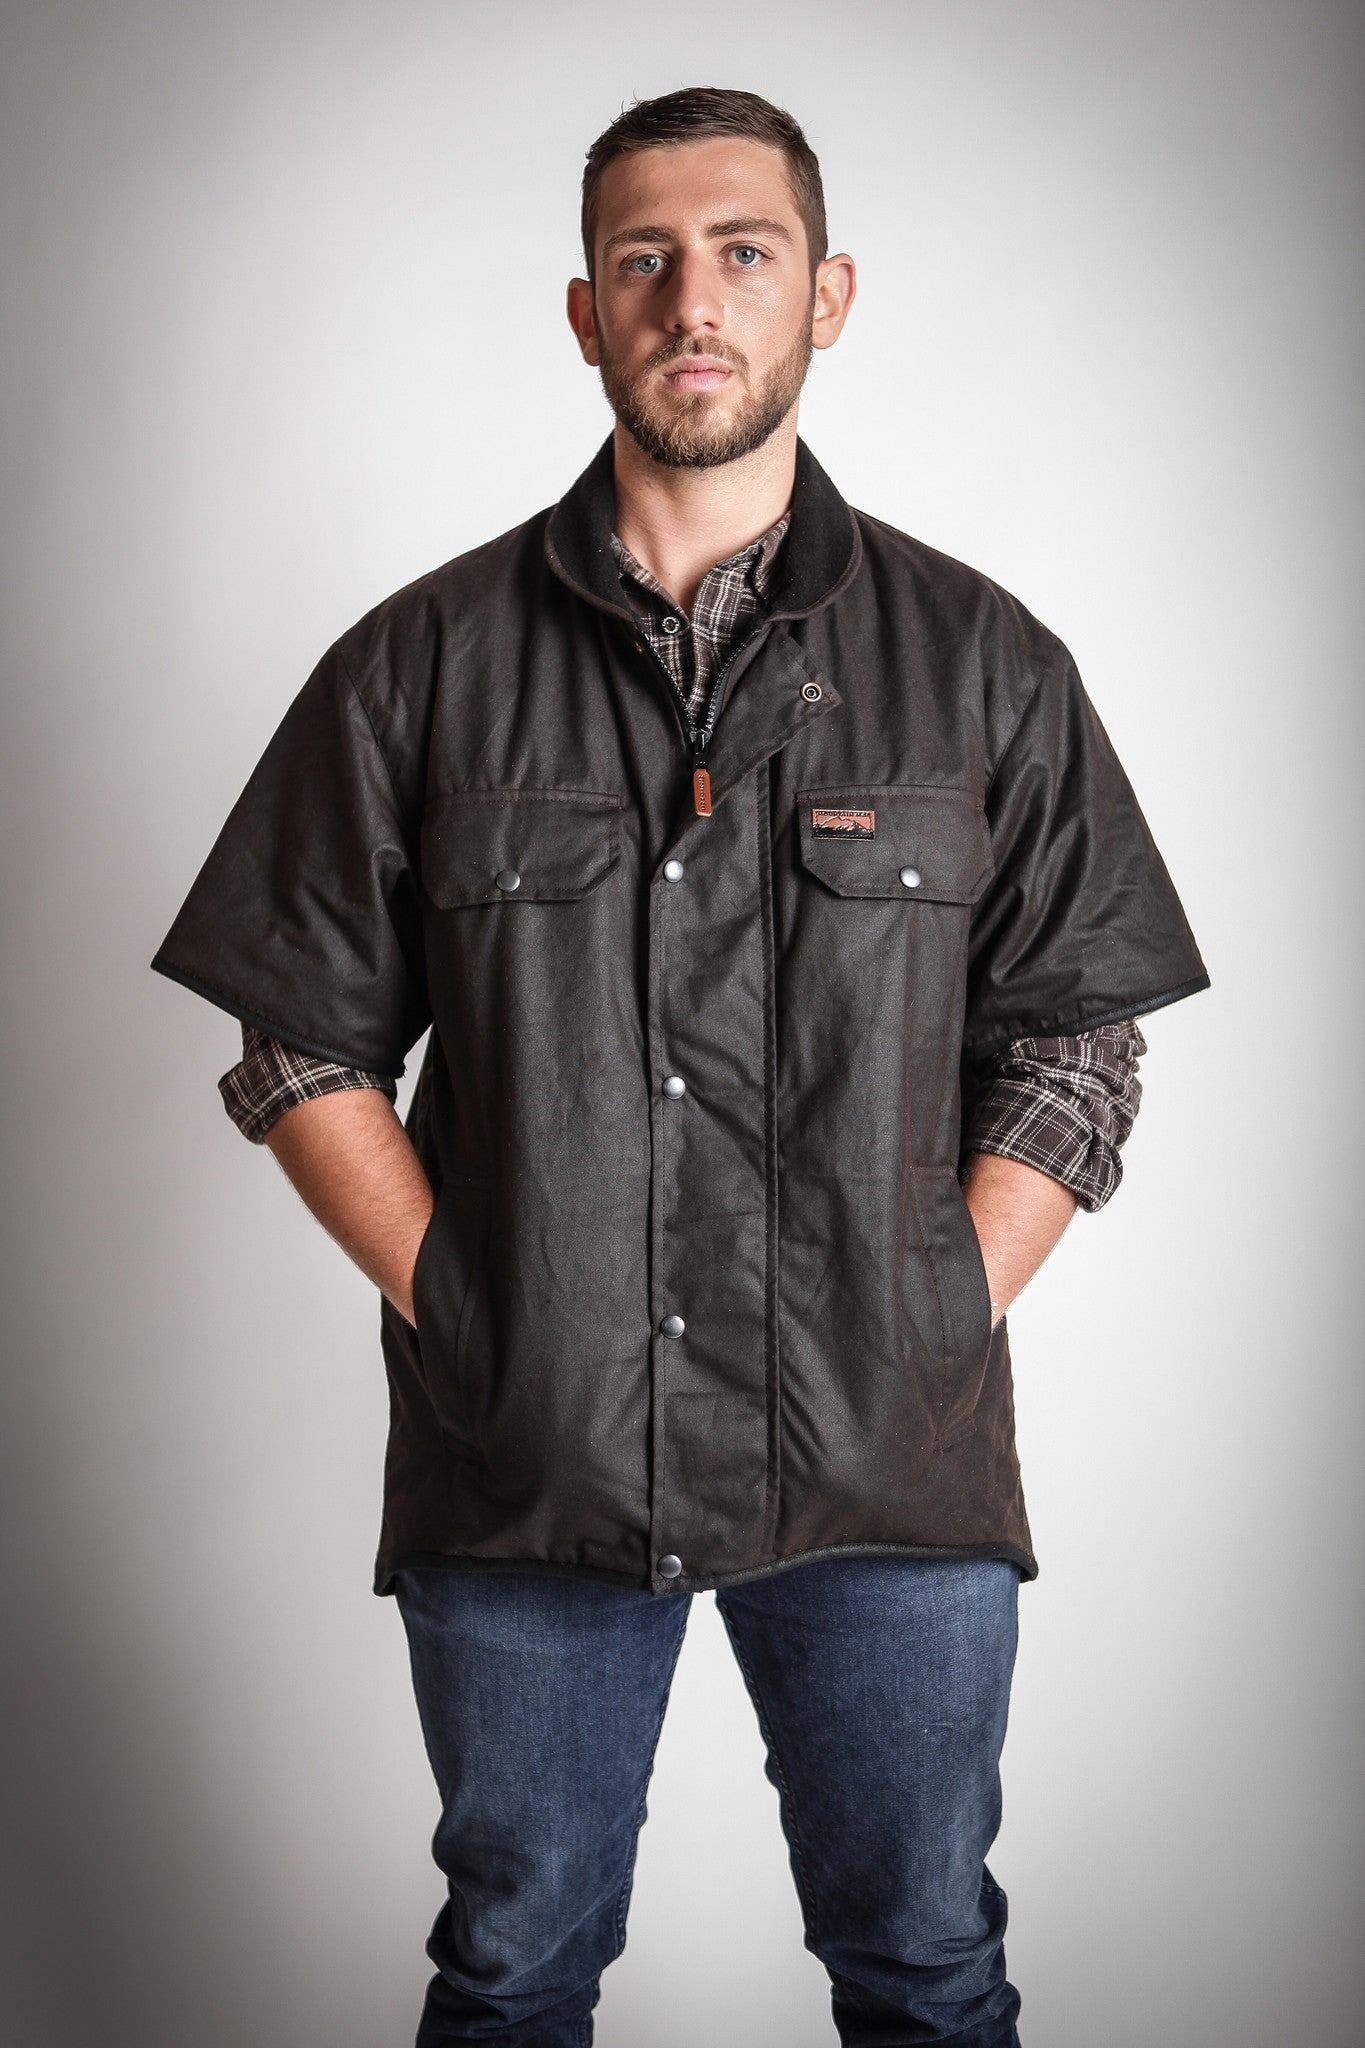 Oilskin vest with sleeves